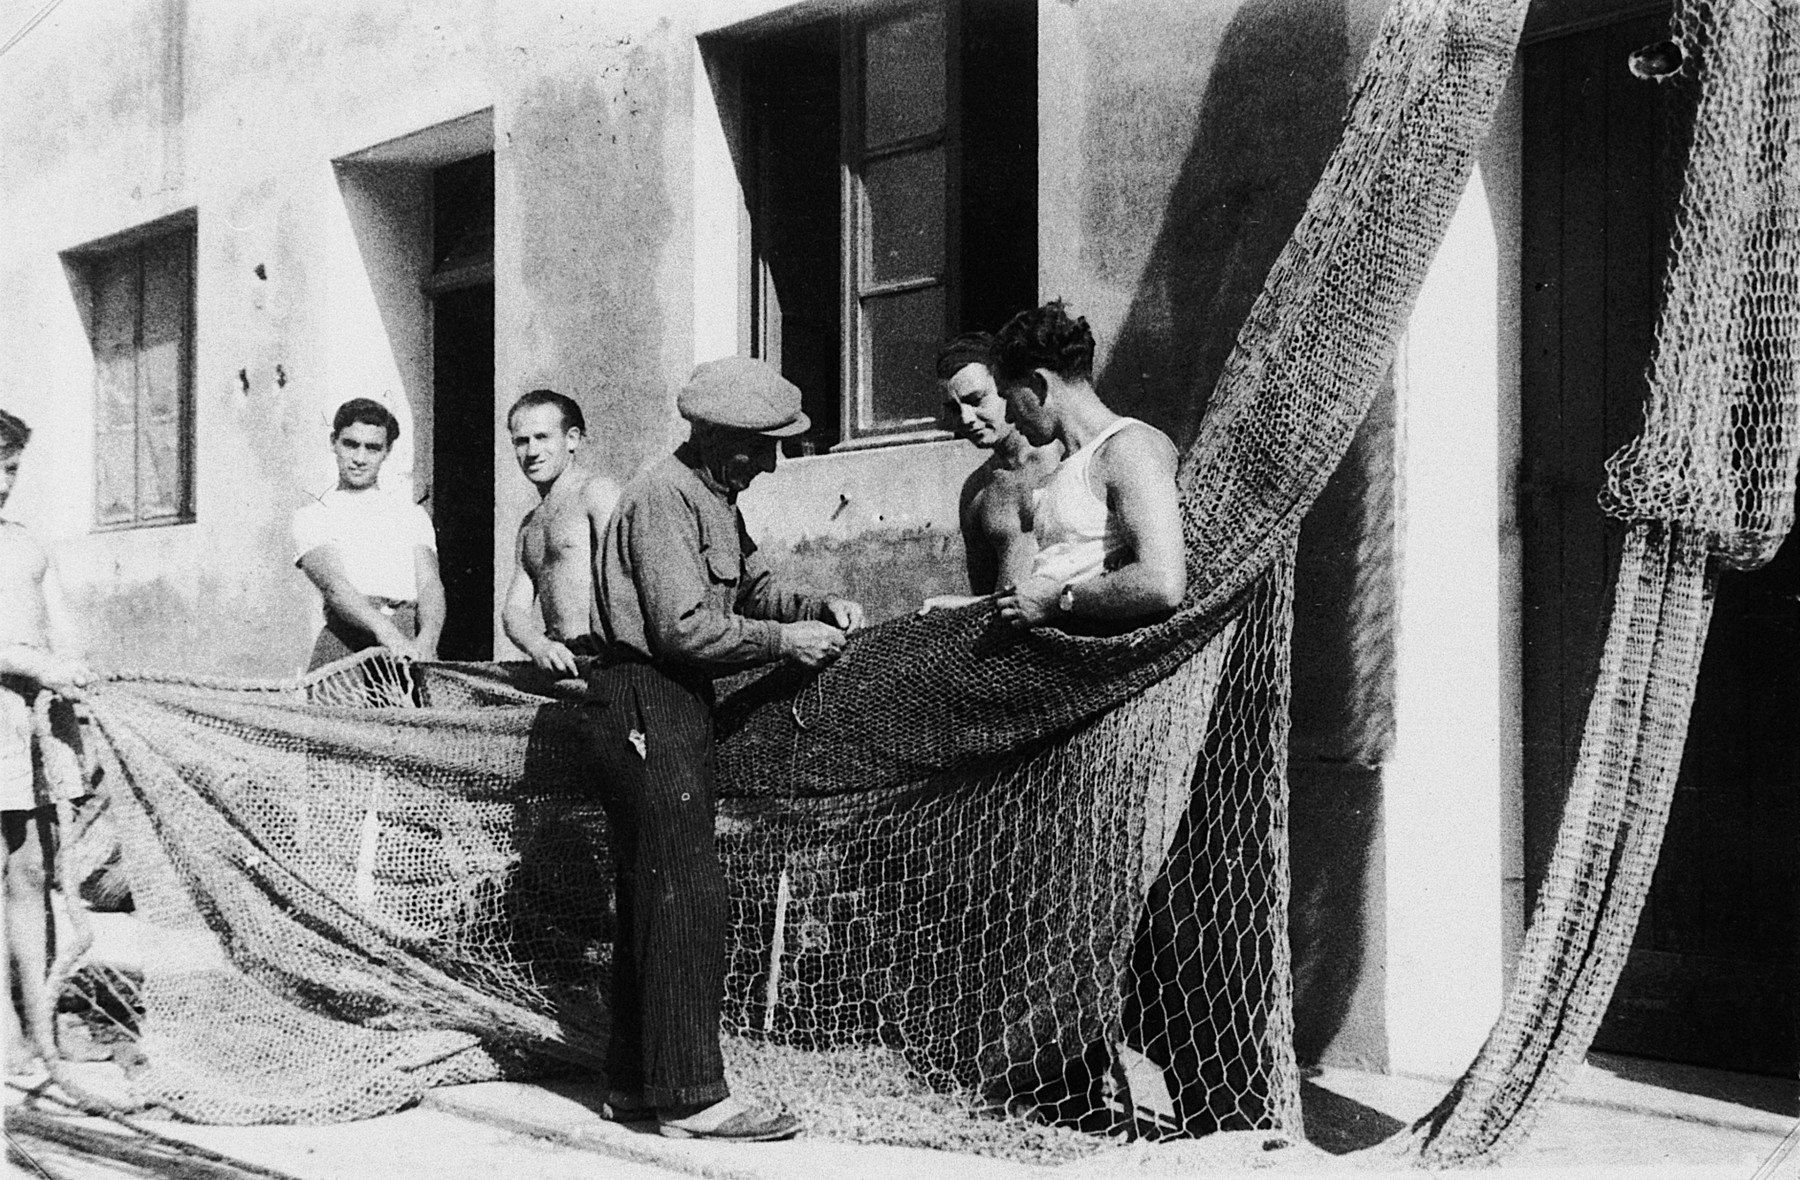 An Italian instructor, Meletti Fano, demonstrates how to fix fishing nets to four Jewish DPs at the Migdalor hachshara, a maritime Zionist collective in Fano, Italy.